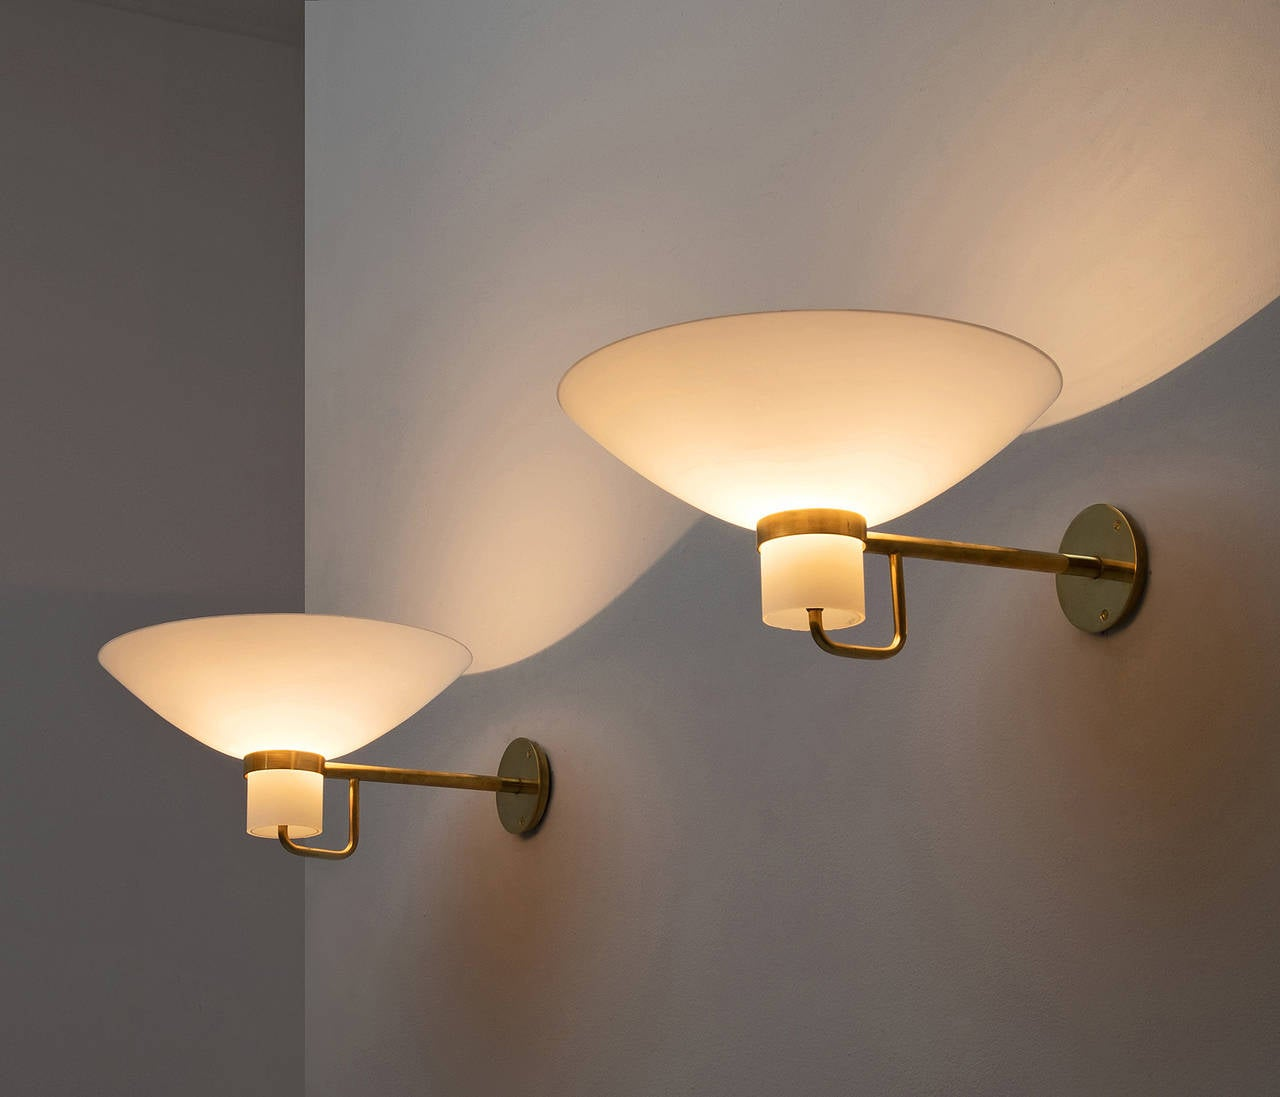 Large Glass Wall Lights : 1 Large wall light by Lyfa, solid brass and opal glass For Sale at 1stdibs